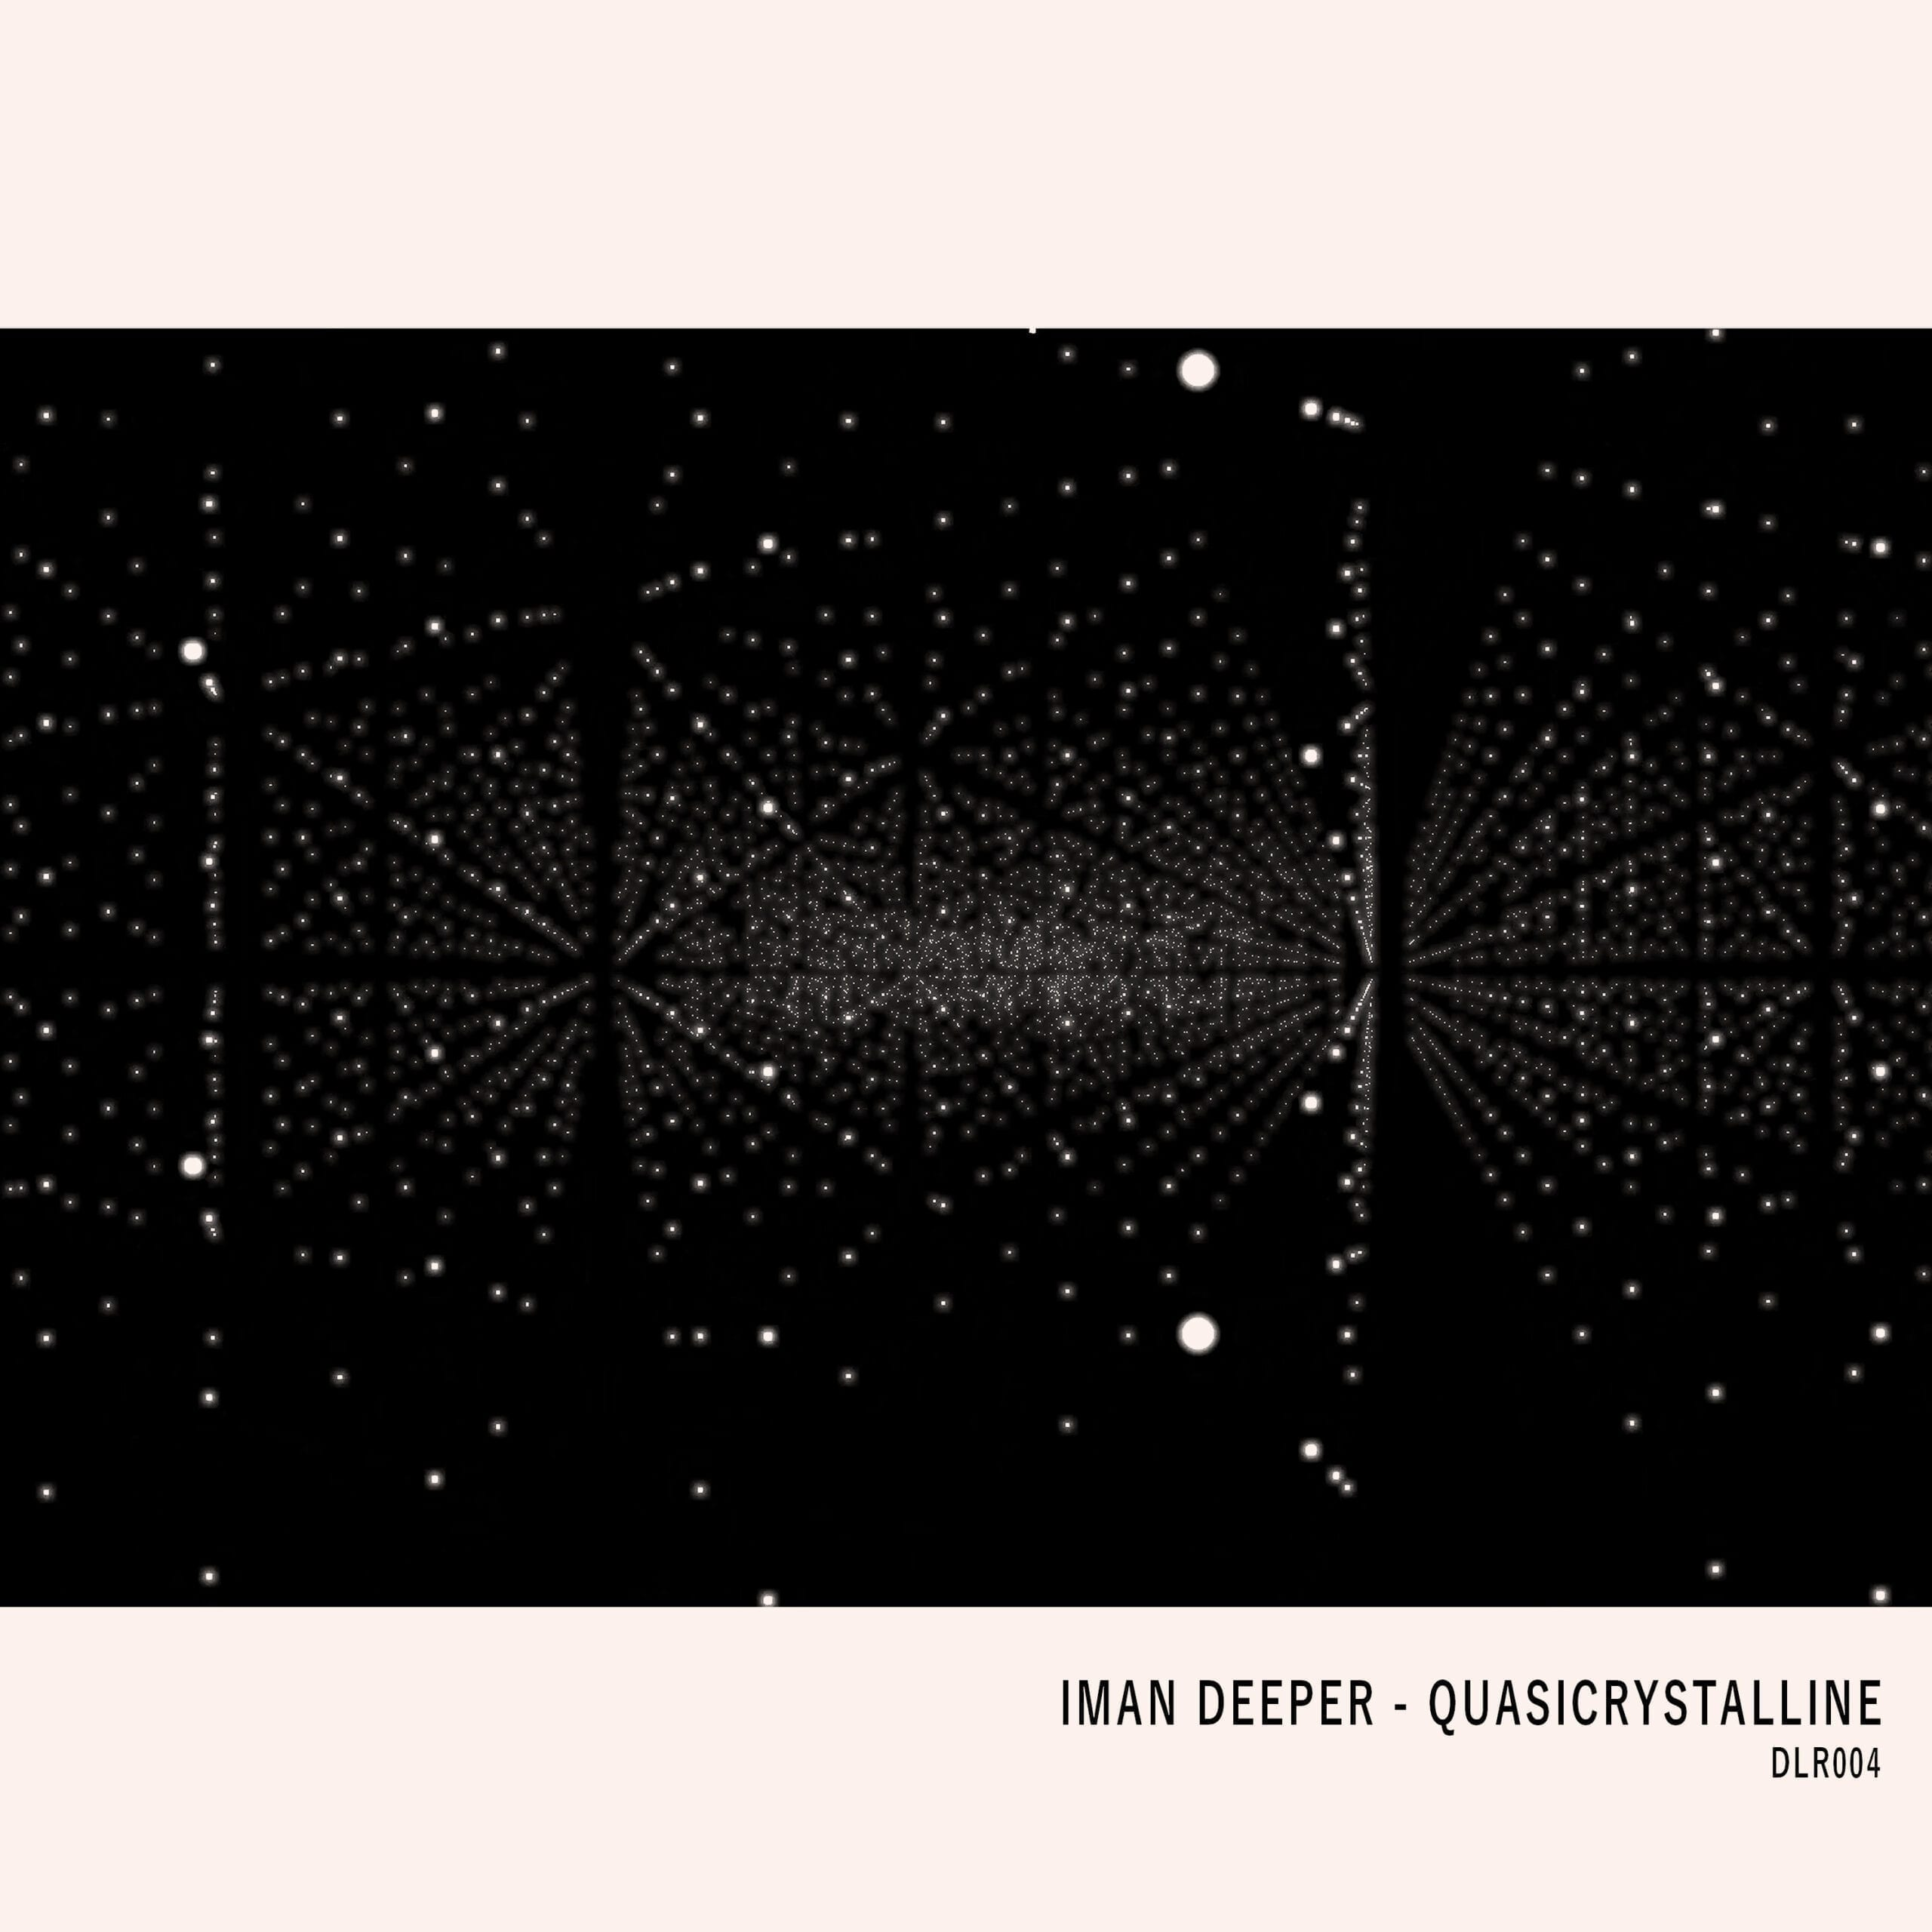 Quasicrystalline is the debut album from Deep Locus co-founder Iman Deeper